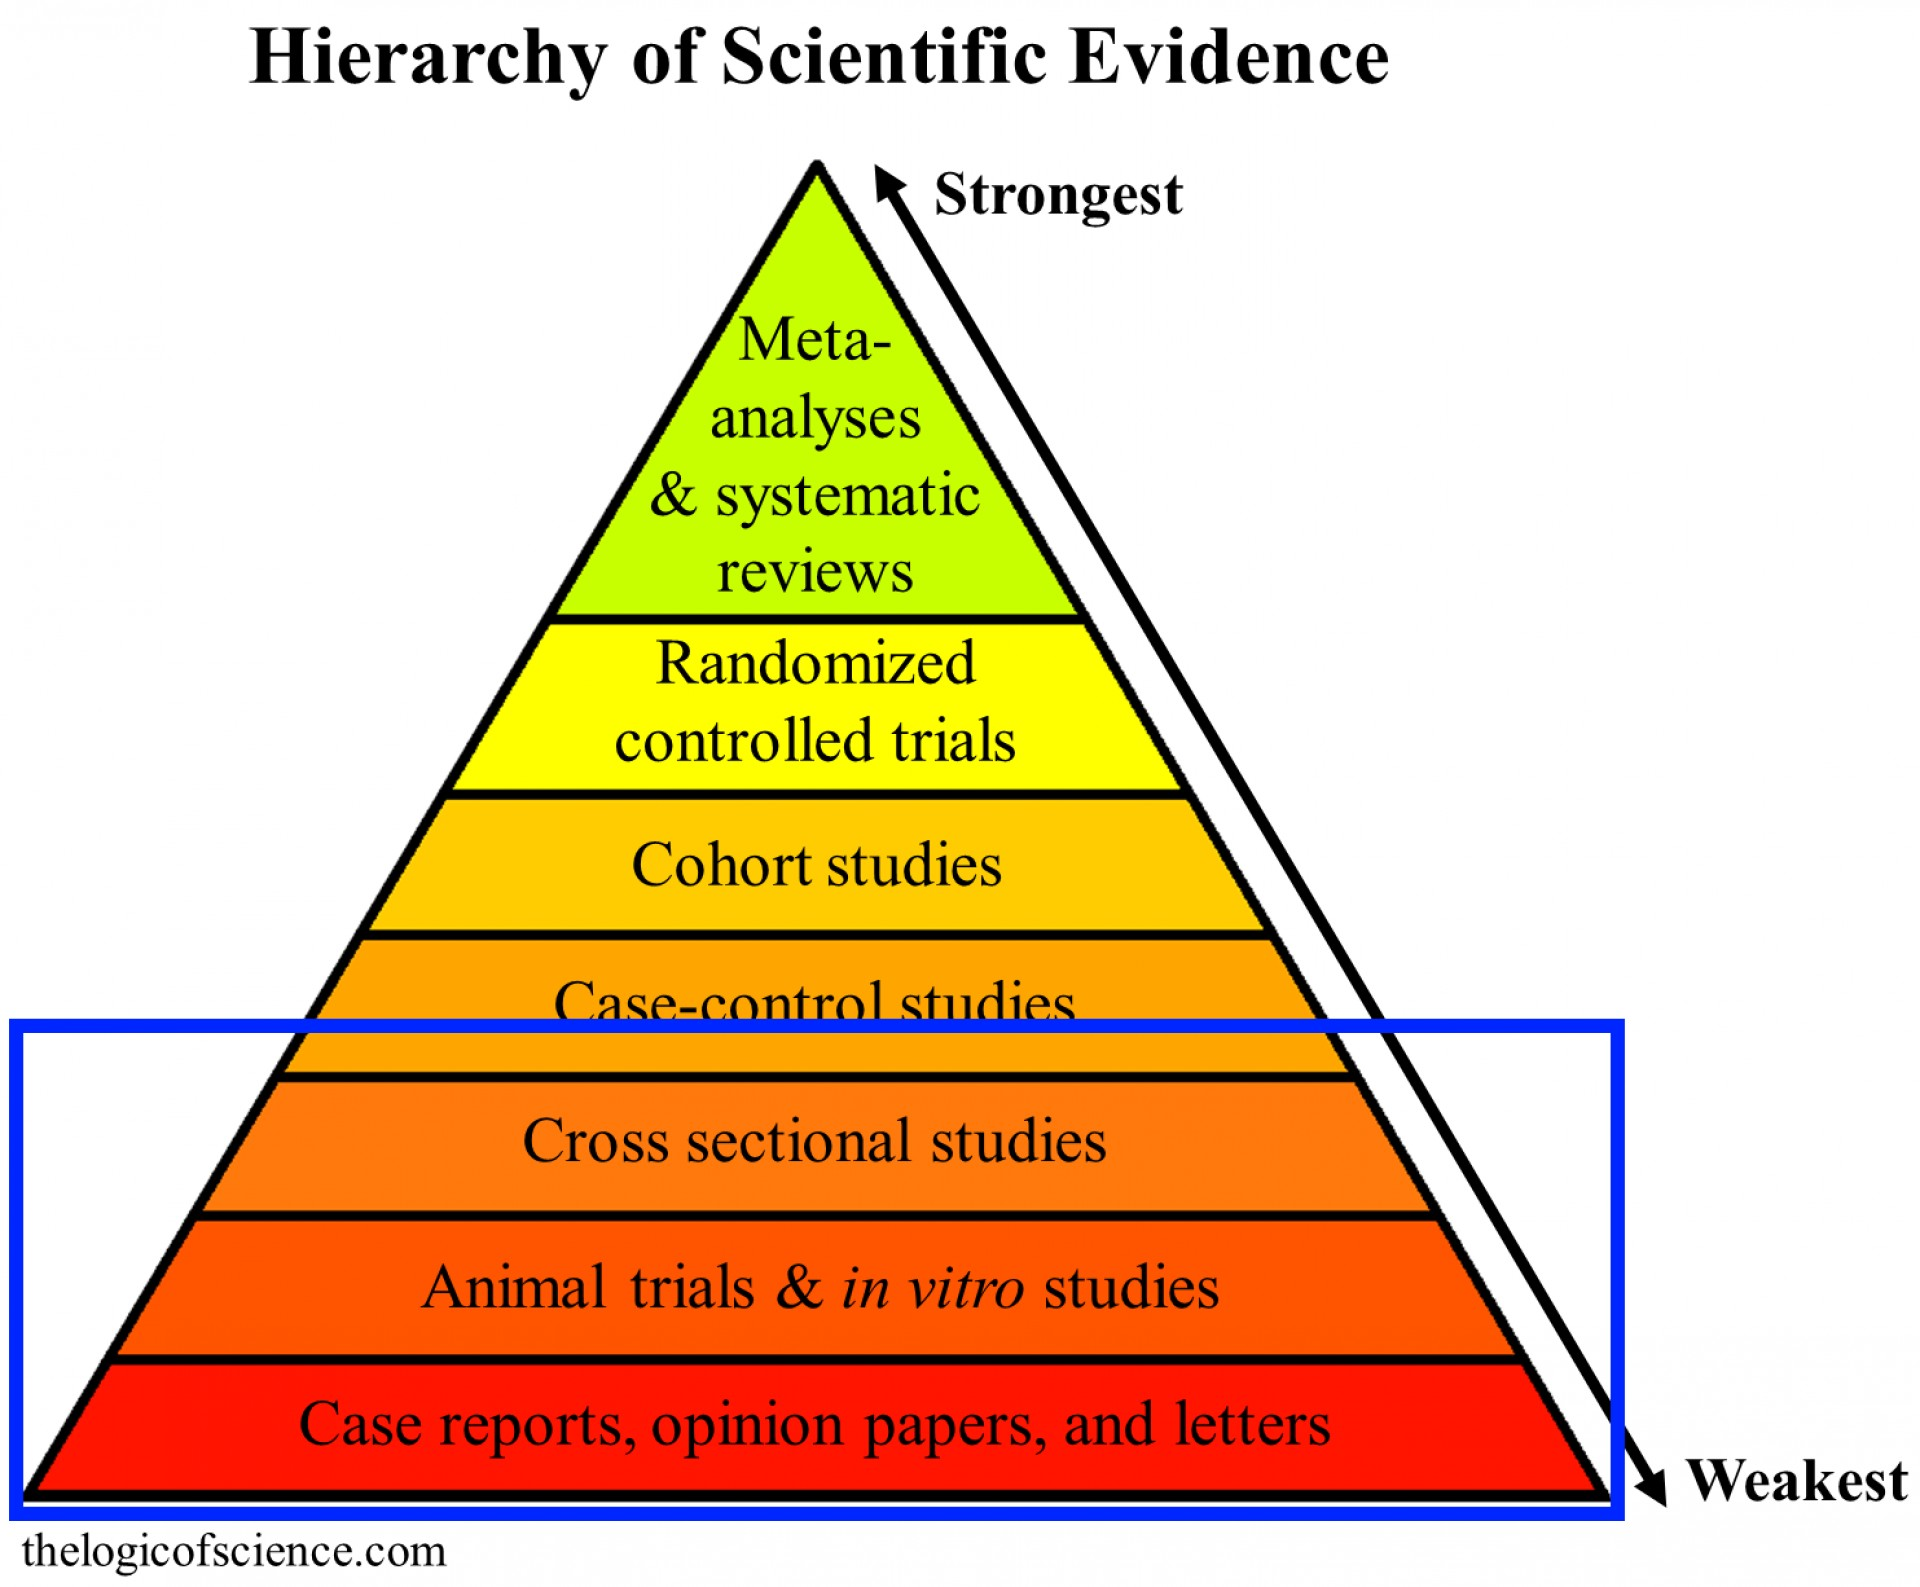 007 Hierarchy Of Evidence3 Research Paper Autism Shocking Questions 1920